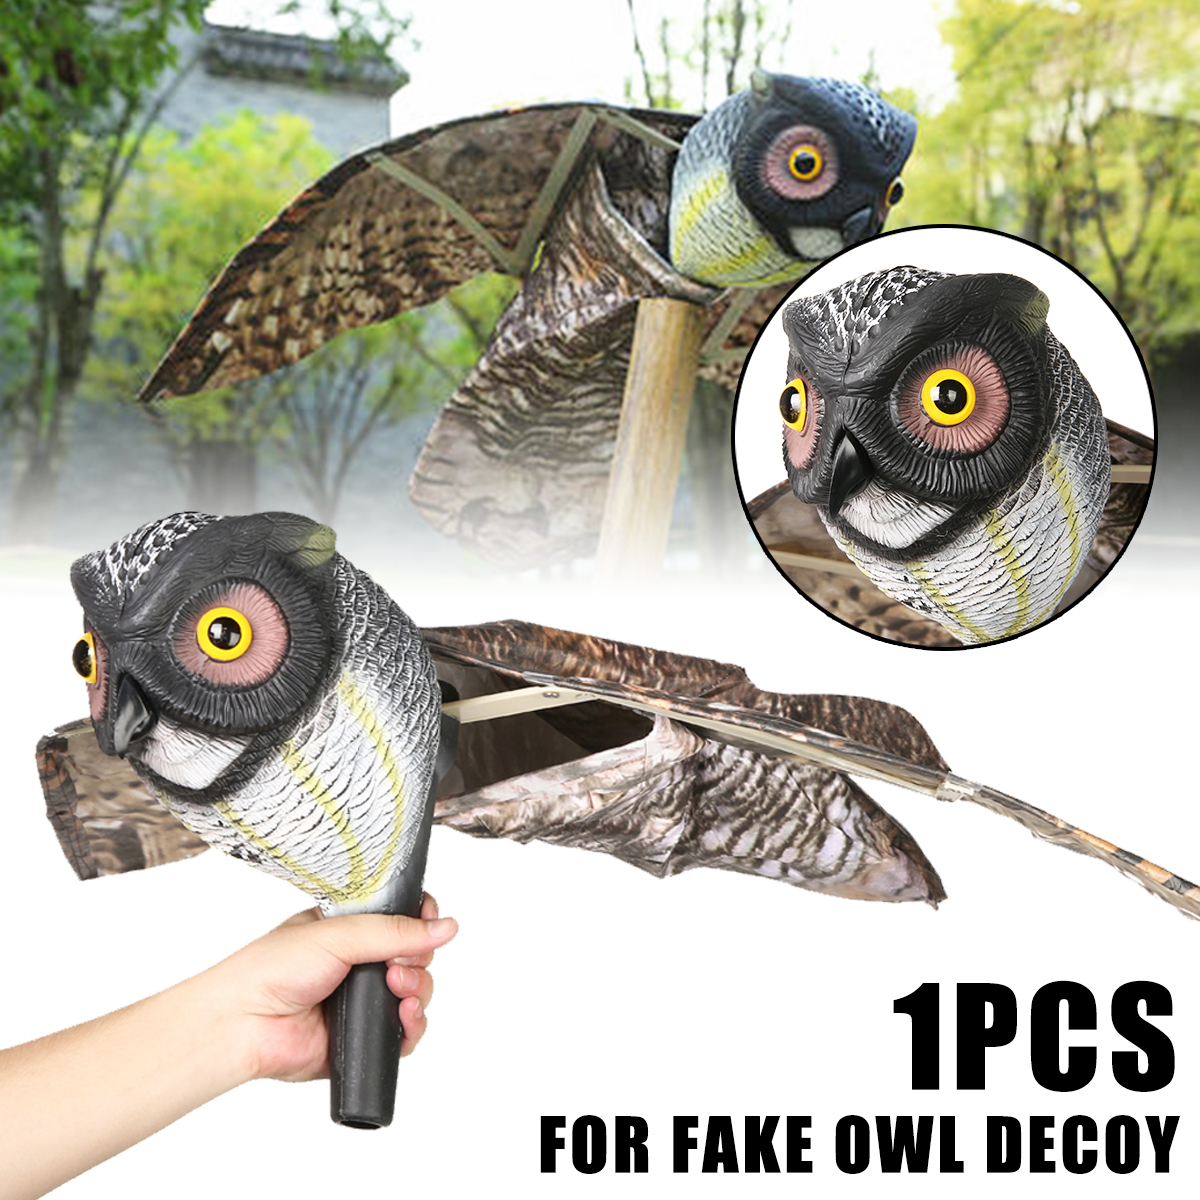 Fake Prowler Owl with Moving Wing Bird Proof Repellent Garden Owl Decoy Pest Scarer Sparrow Bird Scarecrow Control Supplies